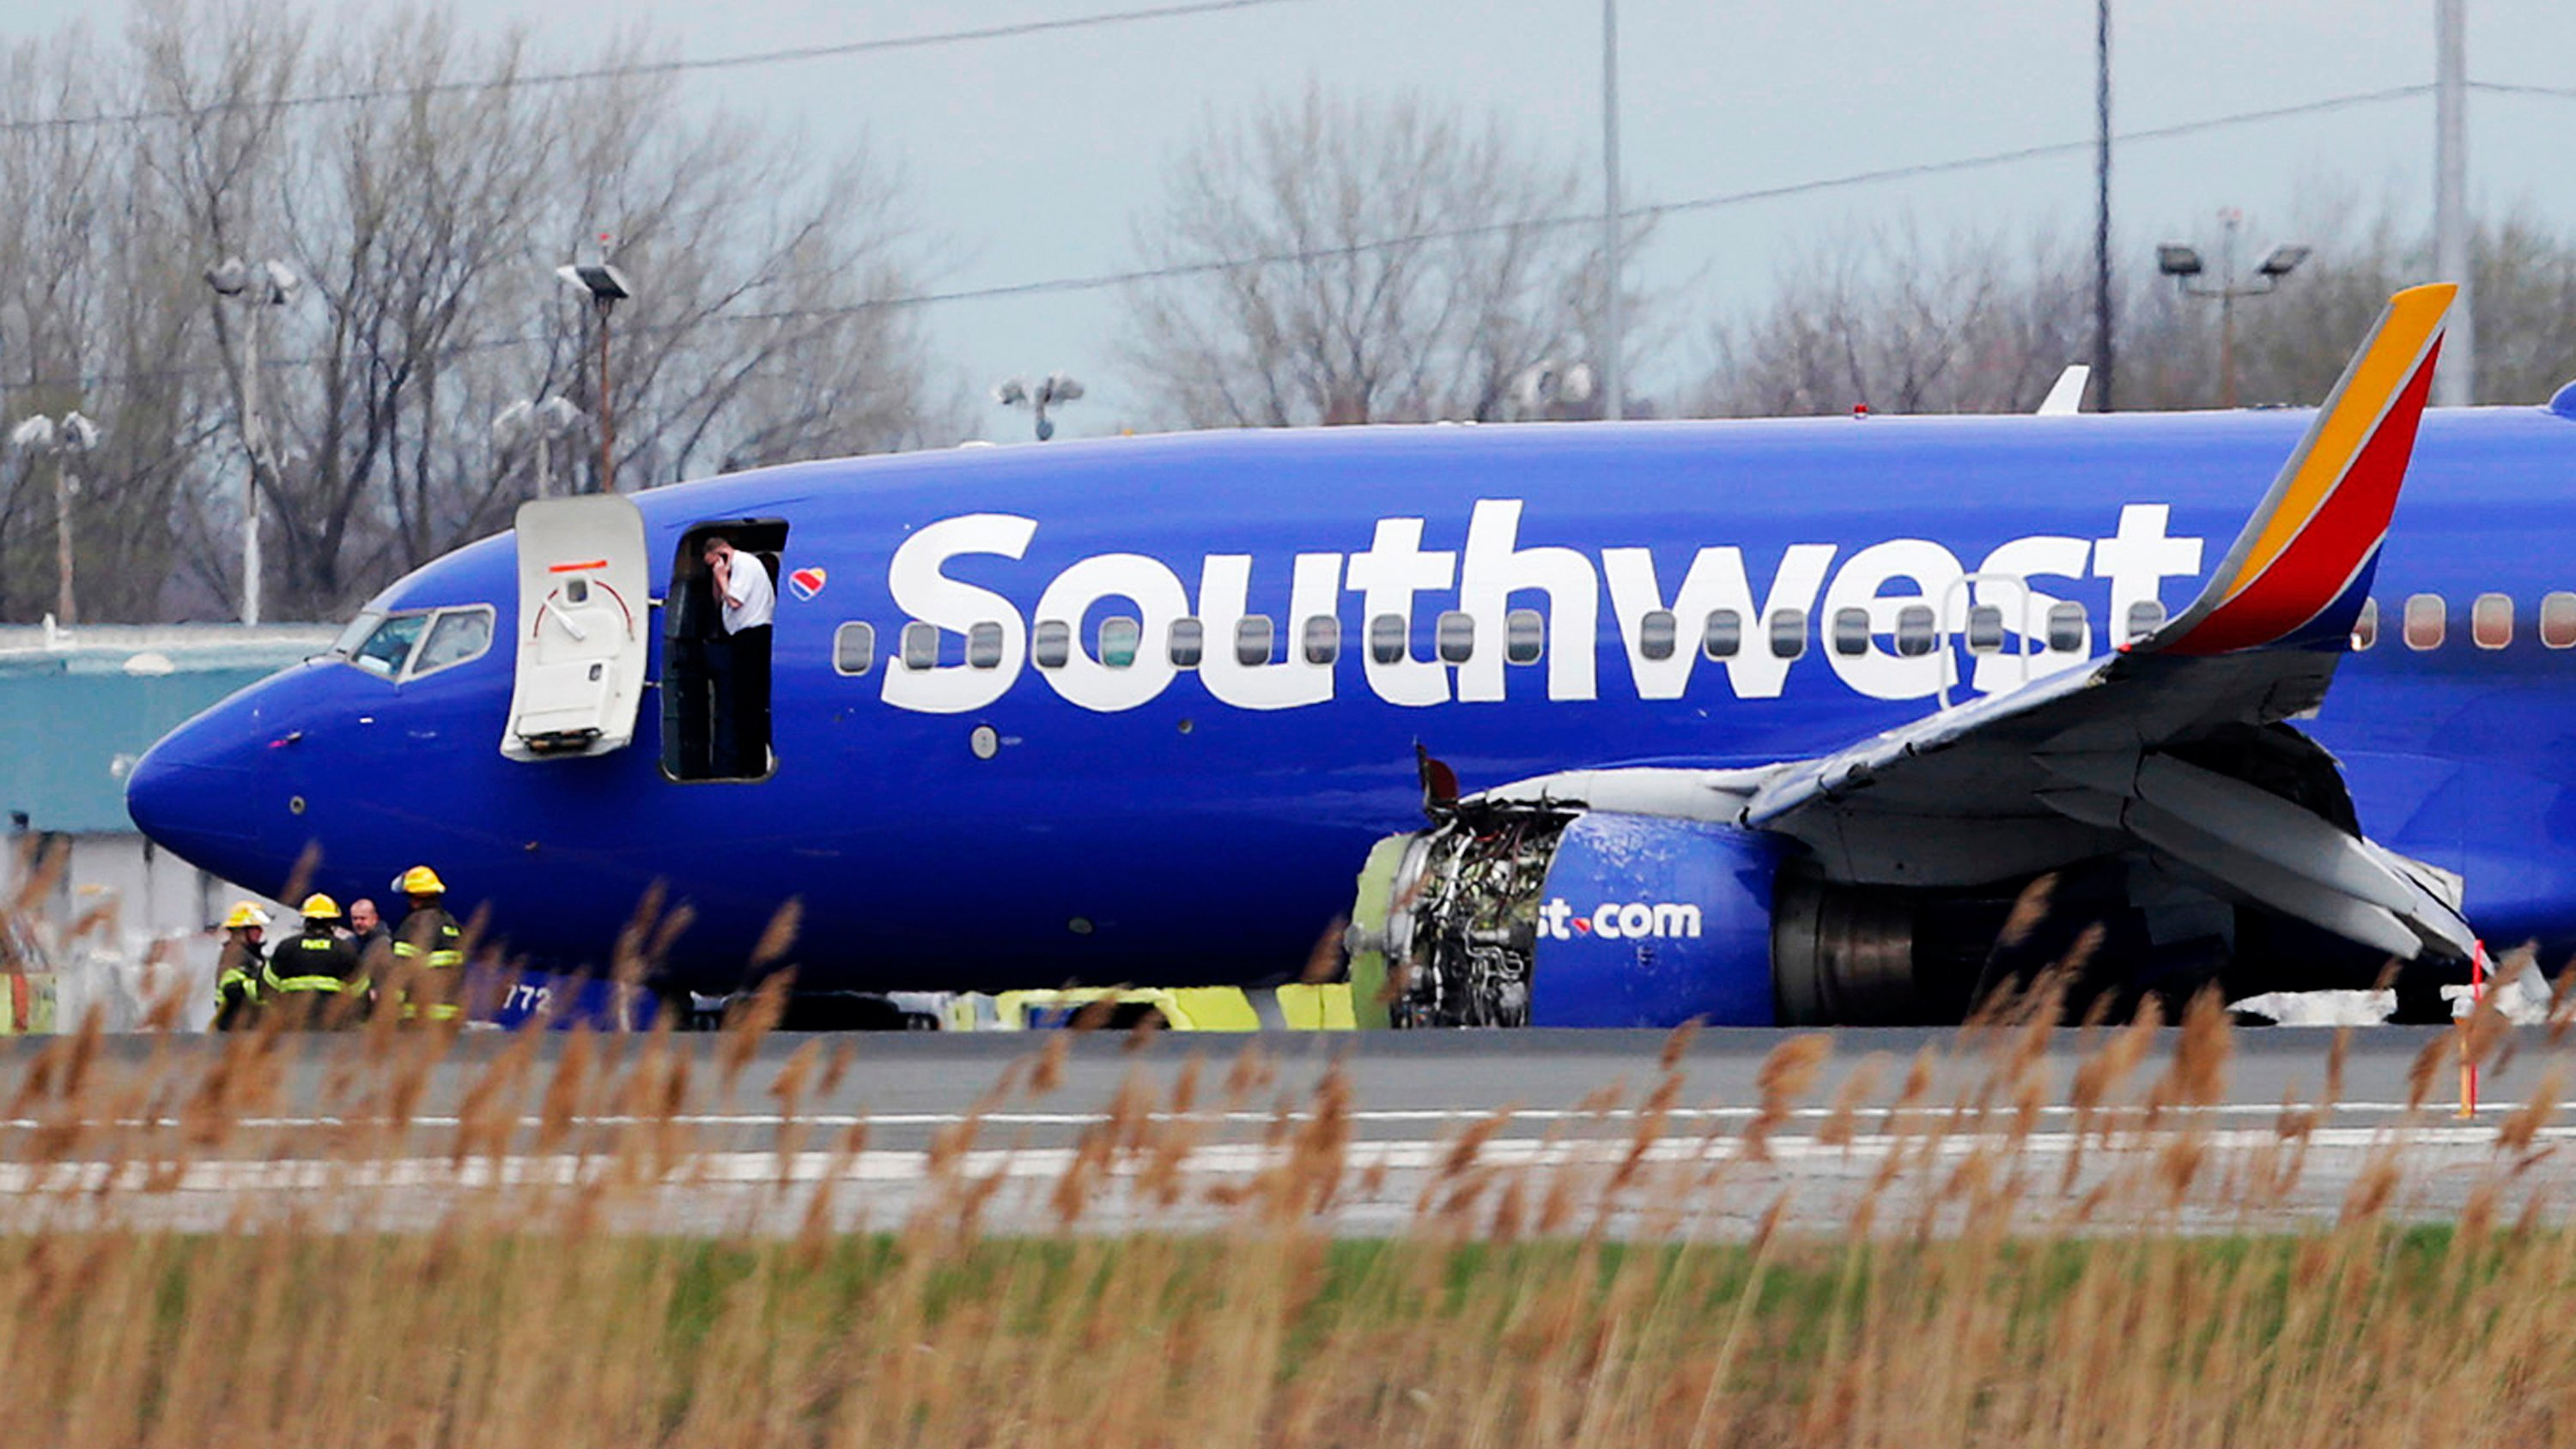 Metal fatigue eyed in Southwest engine failure